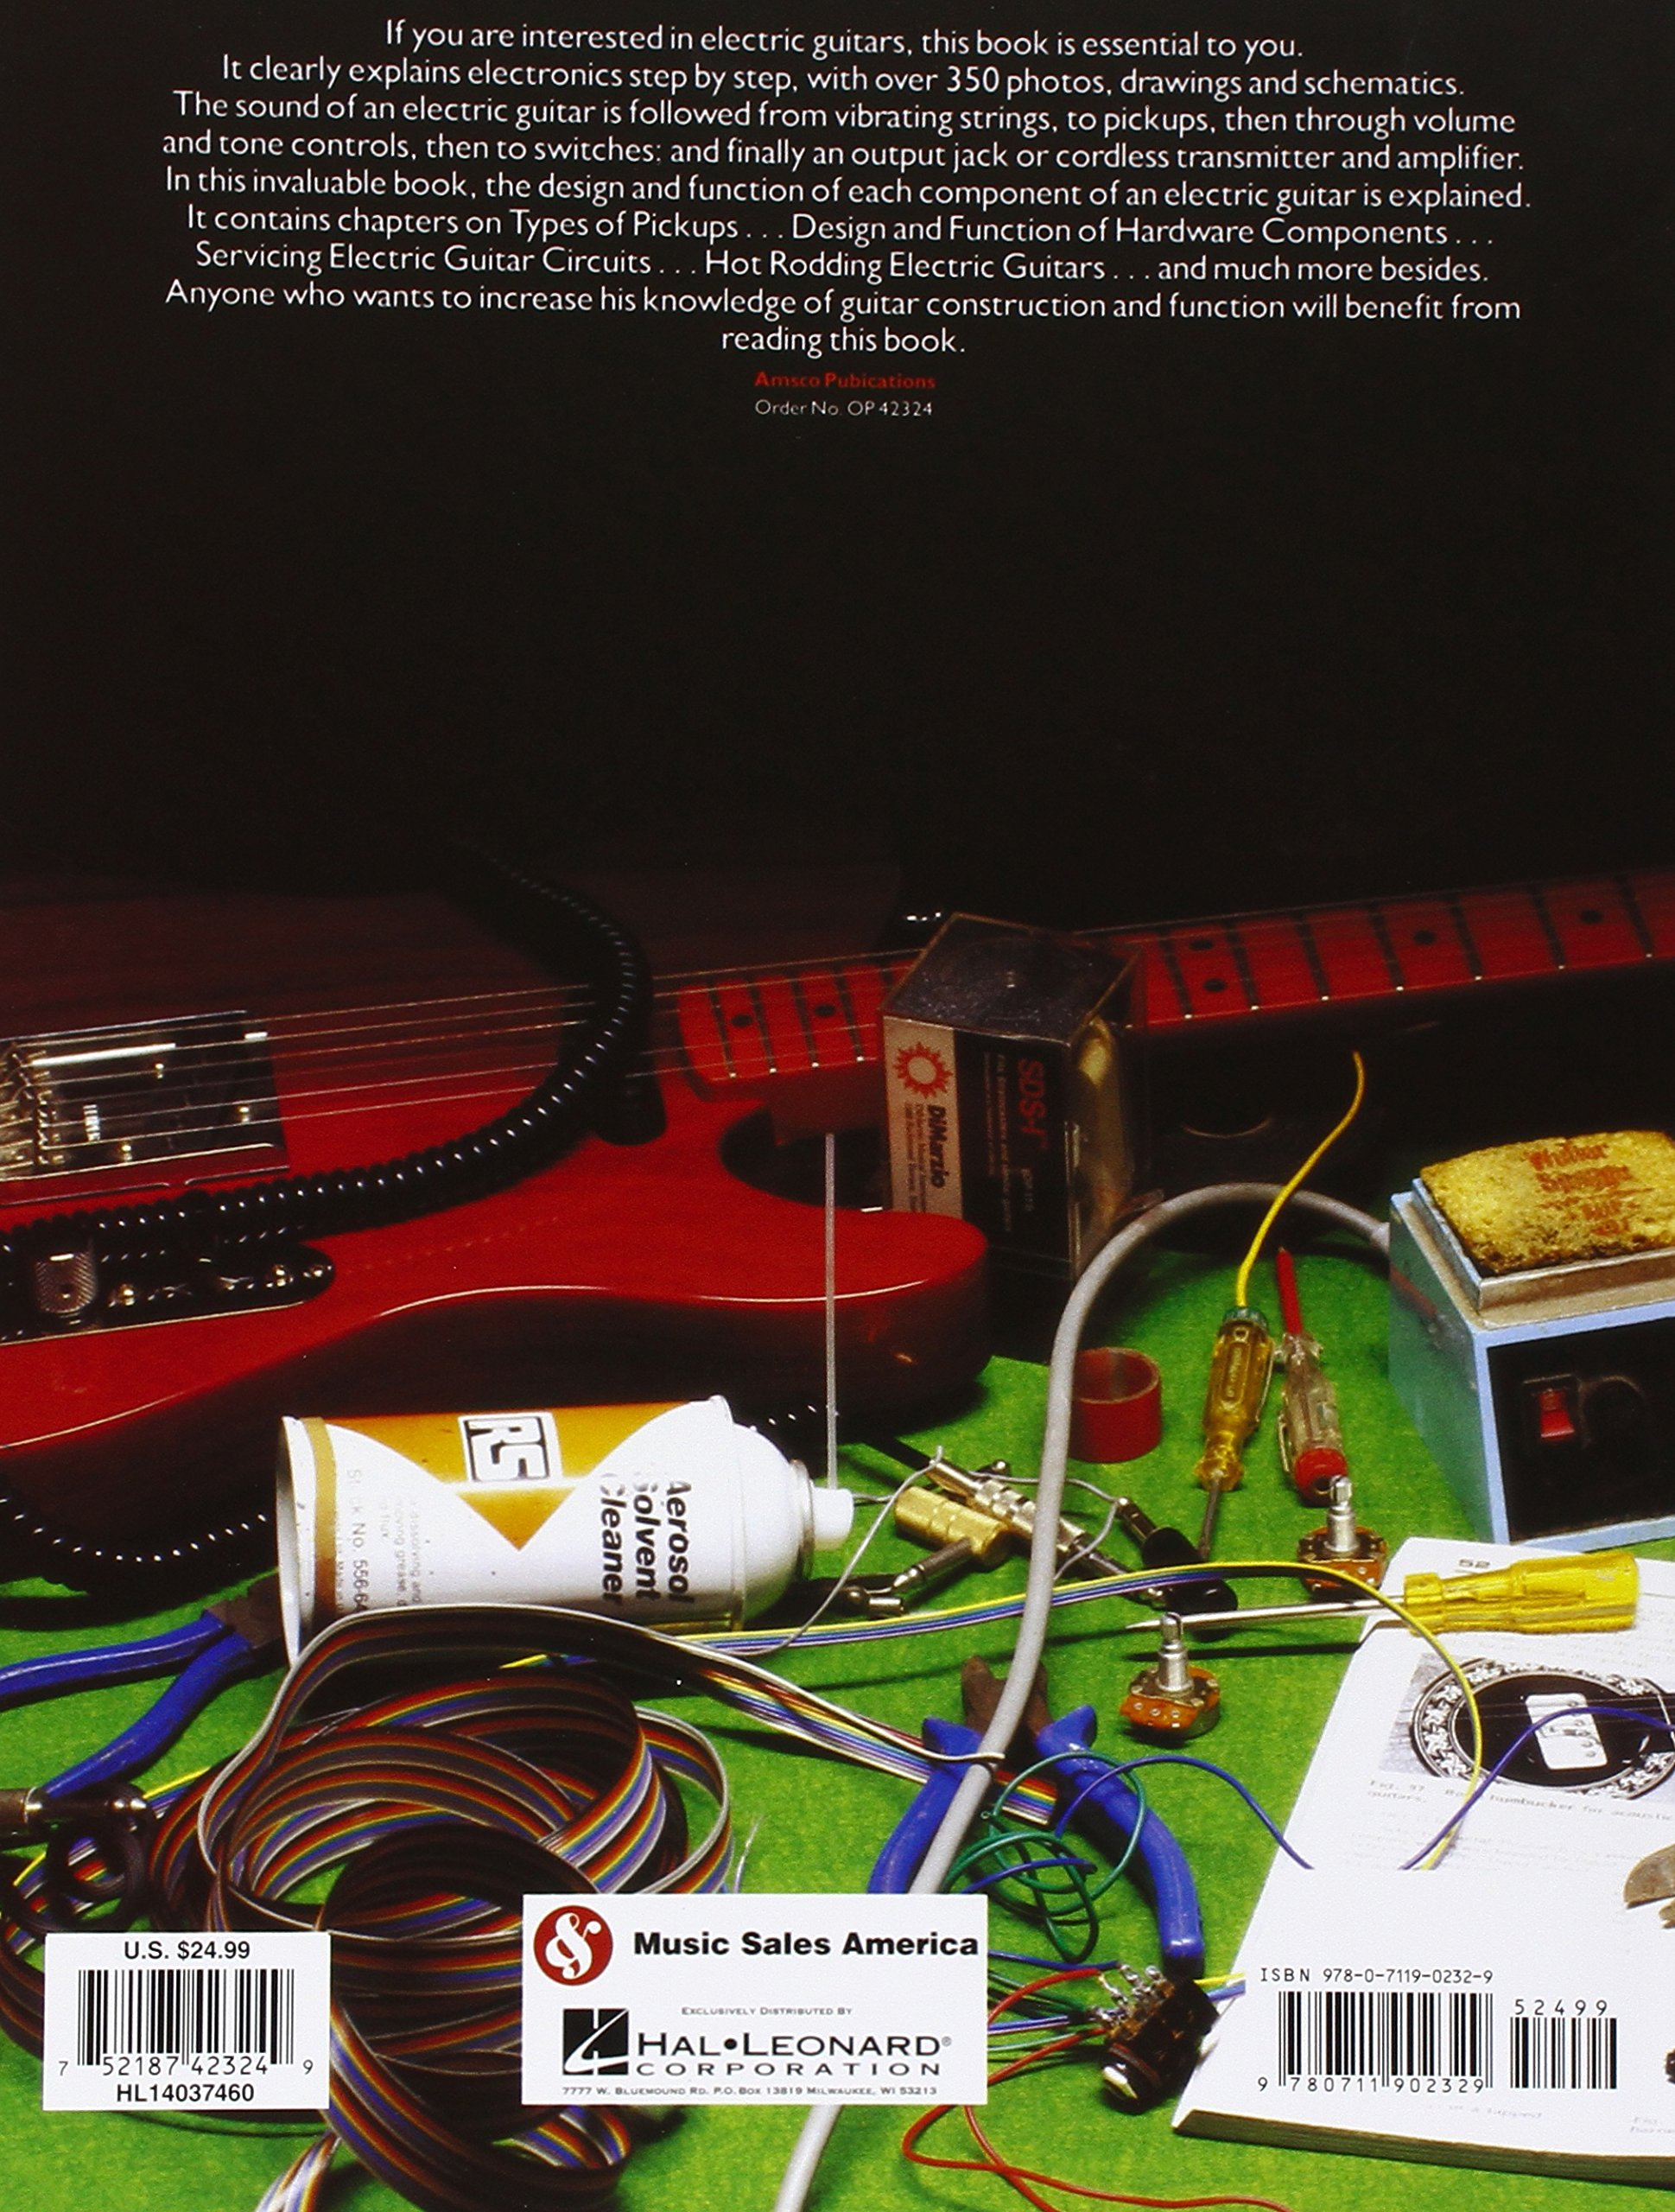 Guitar Electronics For Musicians Reference Teacher February 2012 Circuit Diagram Donald Brosnac Books